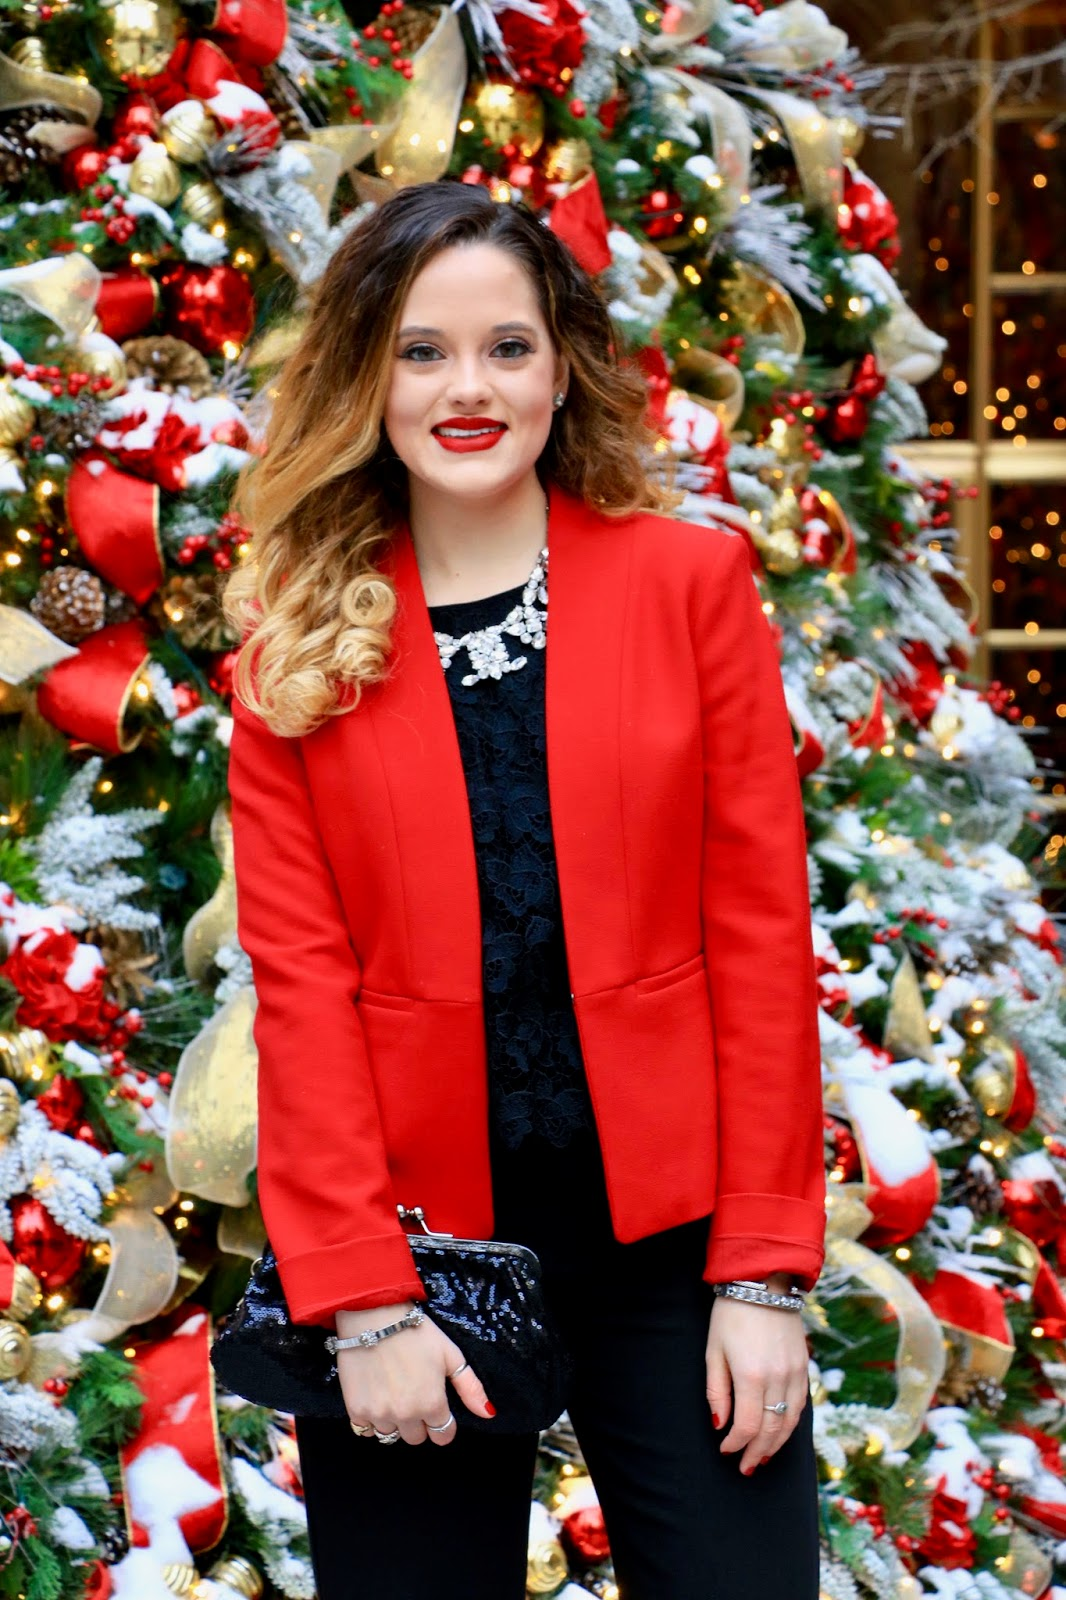 Nyc fashion blogger Kathleen Harper showing how to wear a red blazer